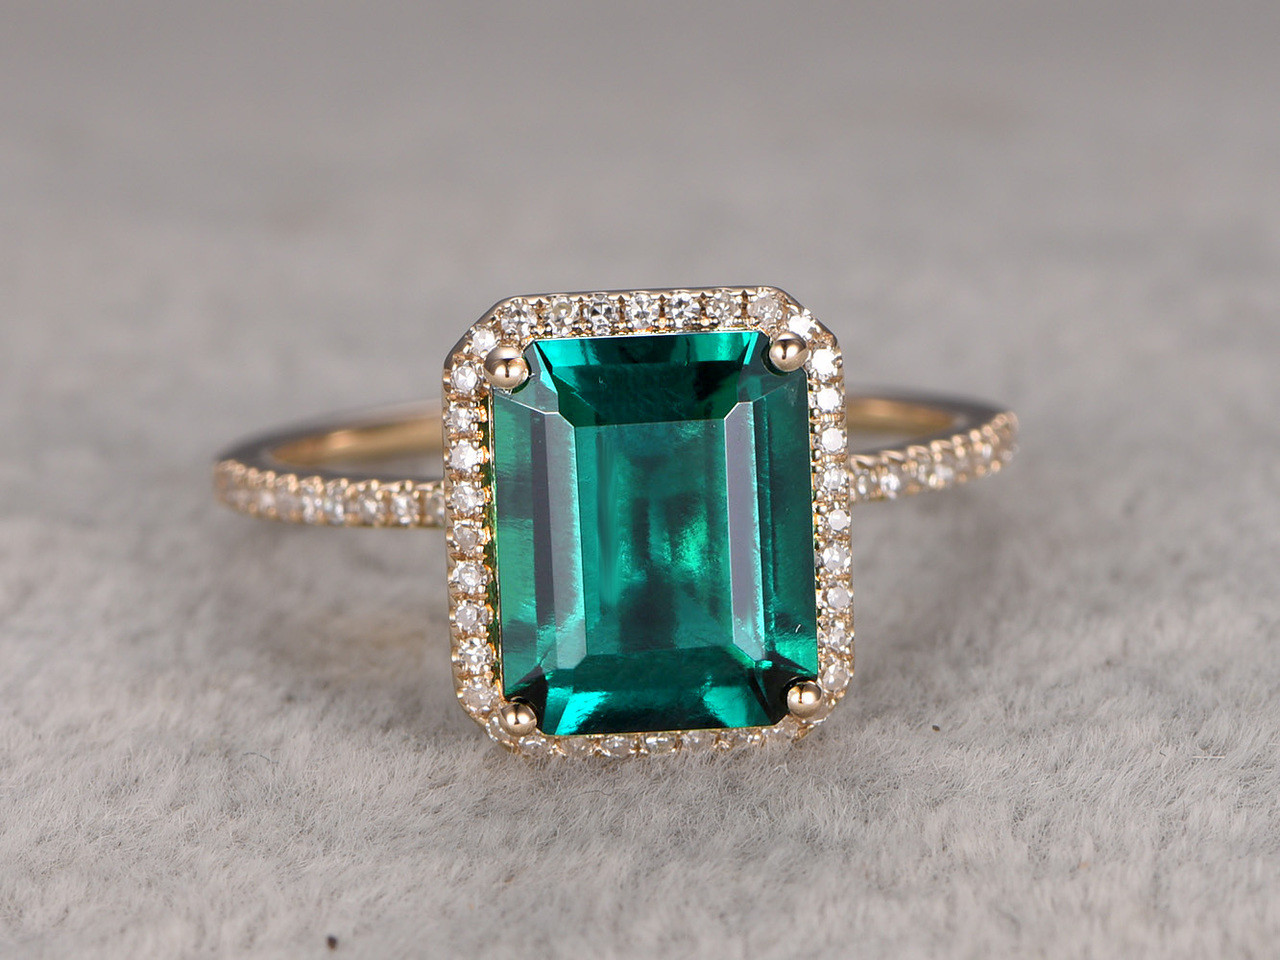 26 Carat Emerald Diamond Engagement Ring Yellow Gold Halo. Religious Cross Rings. File Rings. Black Rhodium Wedding Rings. Feather Engagement Rings. Charcoal Engagement Rings. Wedding Japanese Wedding Rings. Unusual Wedding Rings. Love Symbol Wedding Rings